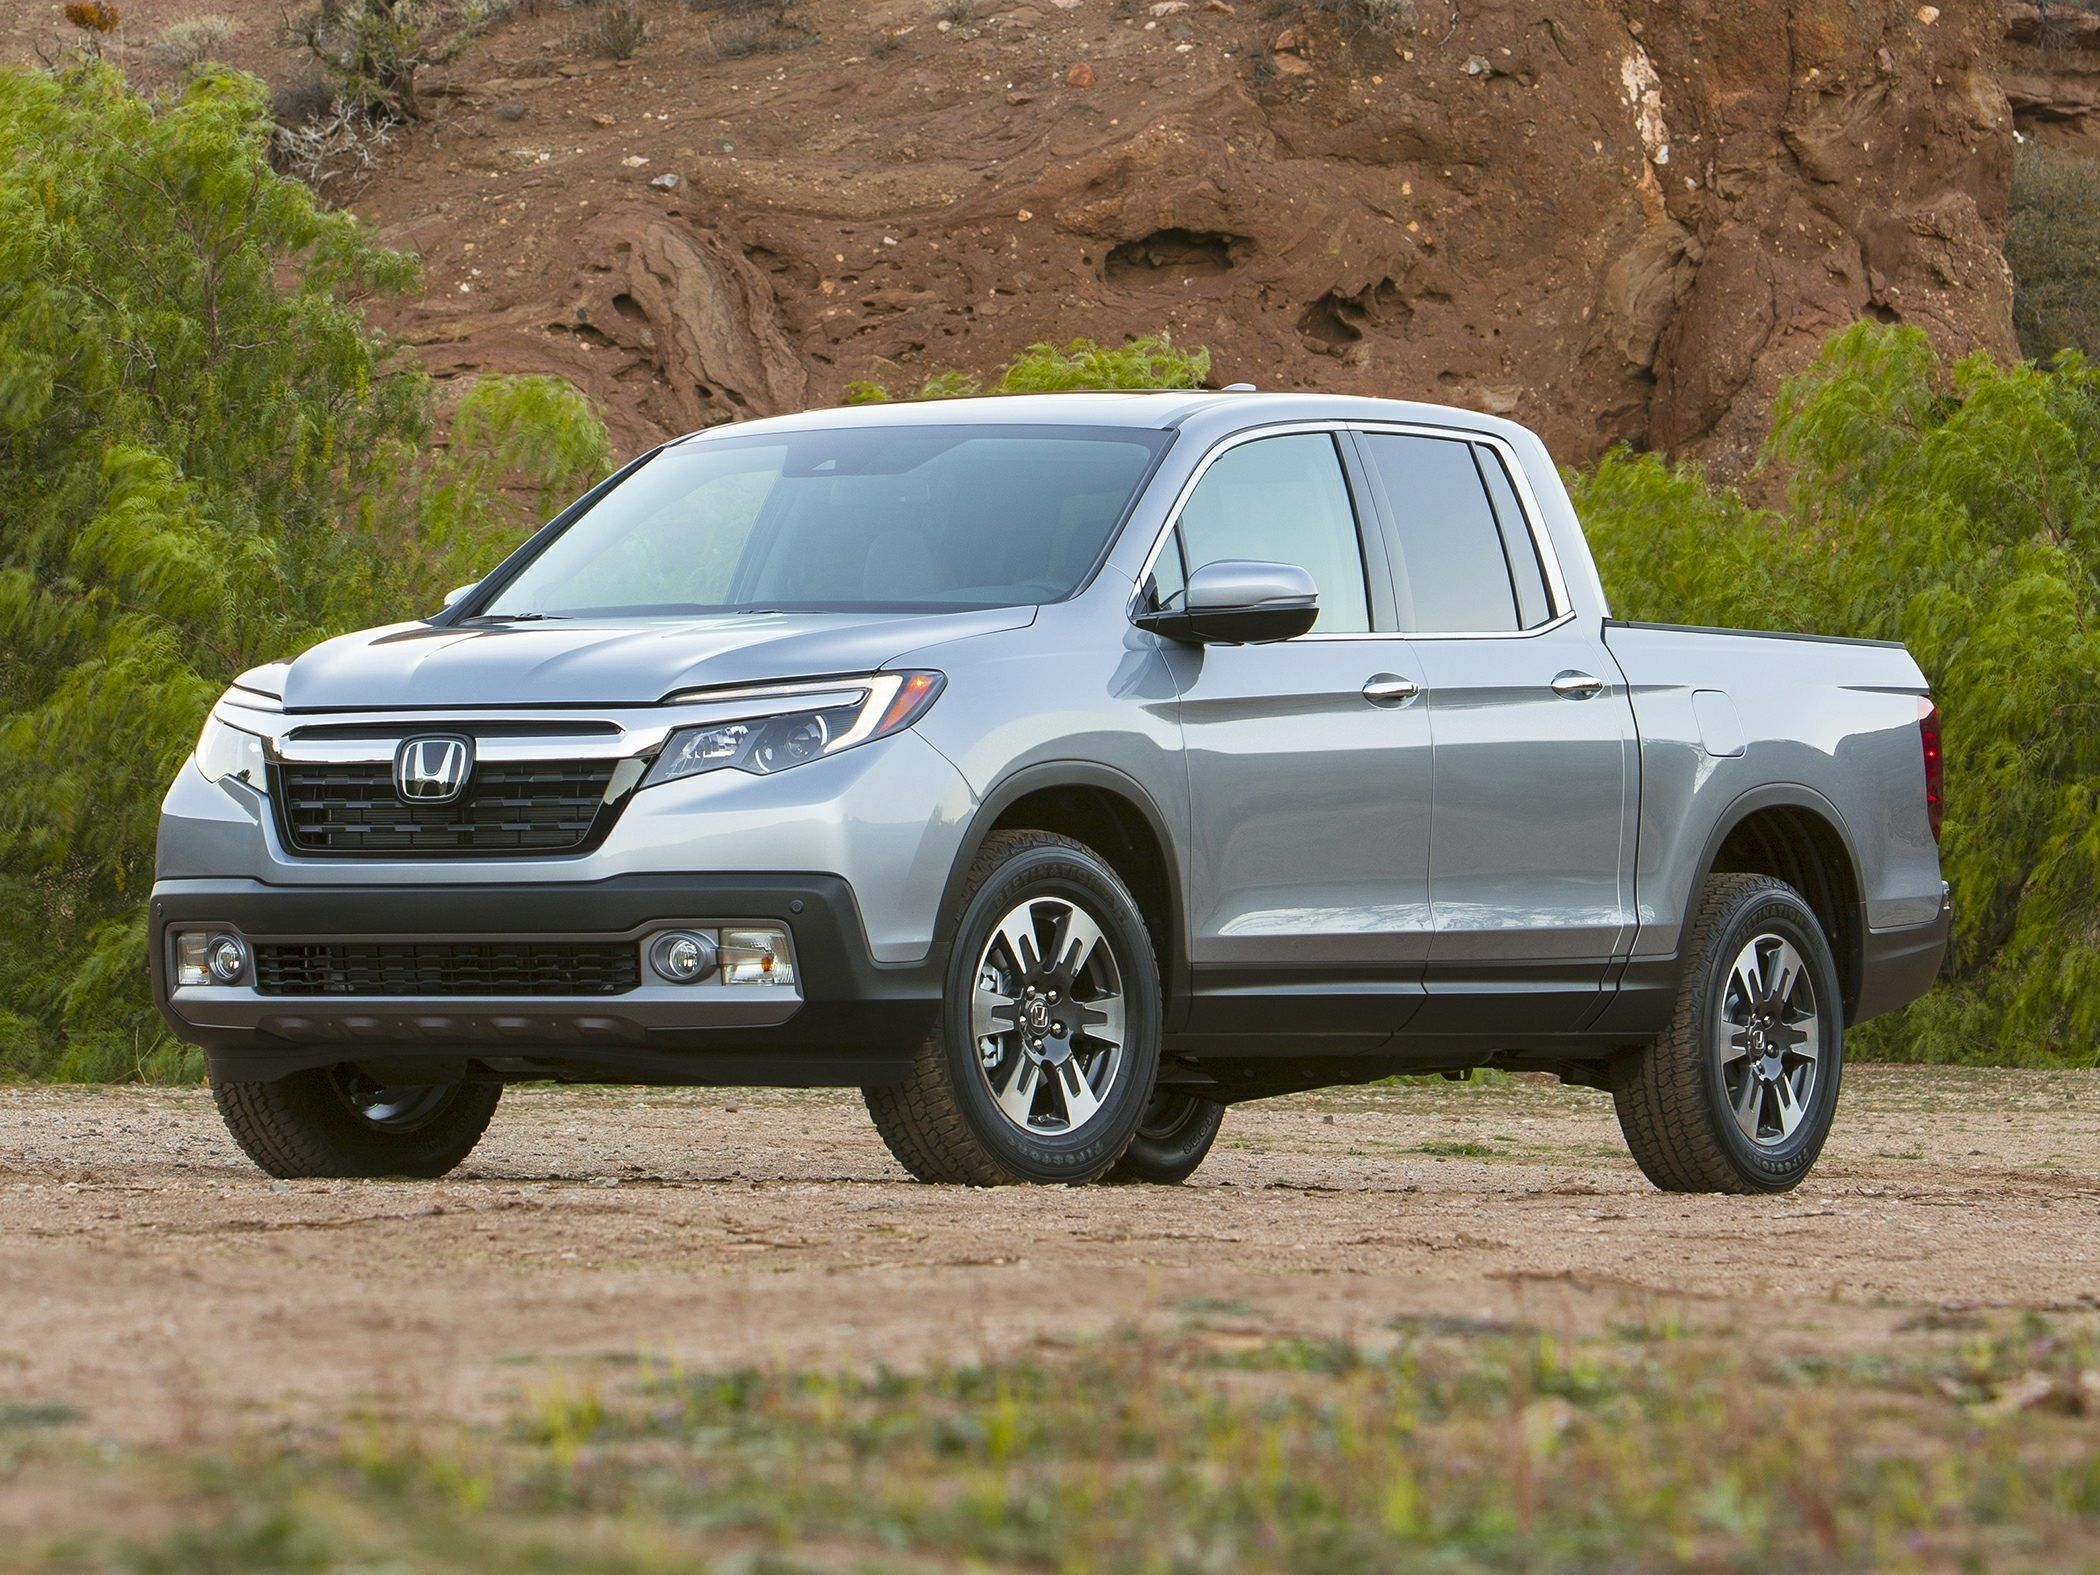 Honda Truck 2019 Concept, Redesign and Review Honda